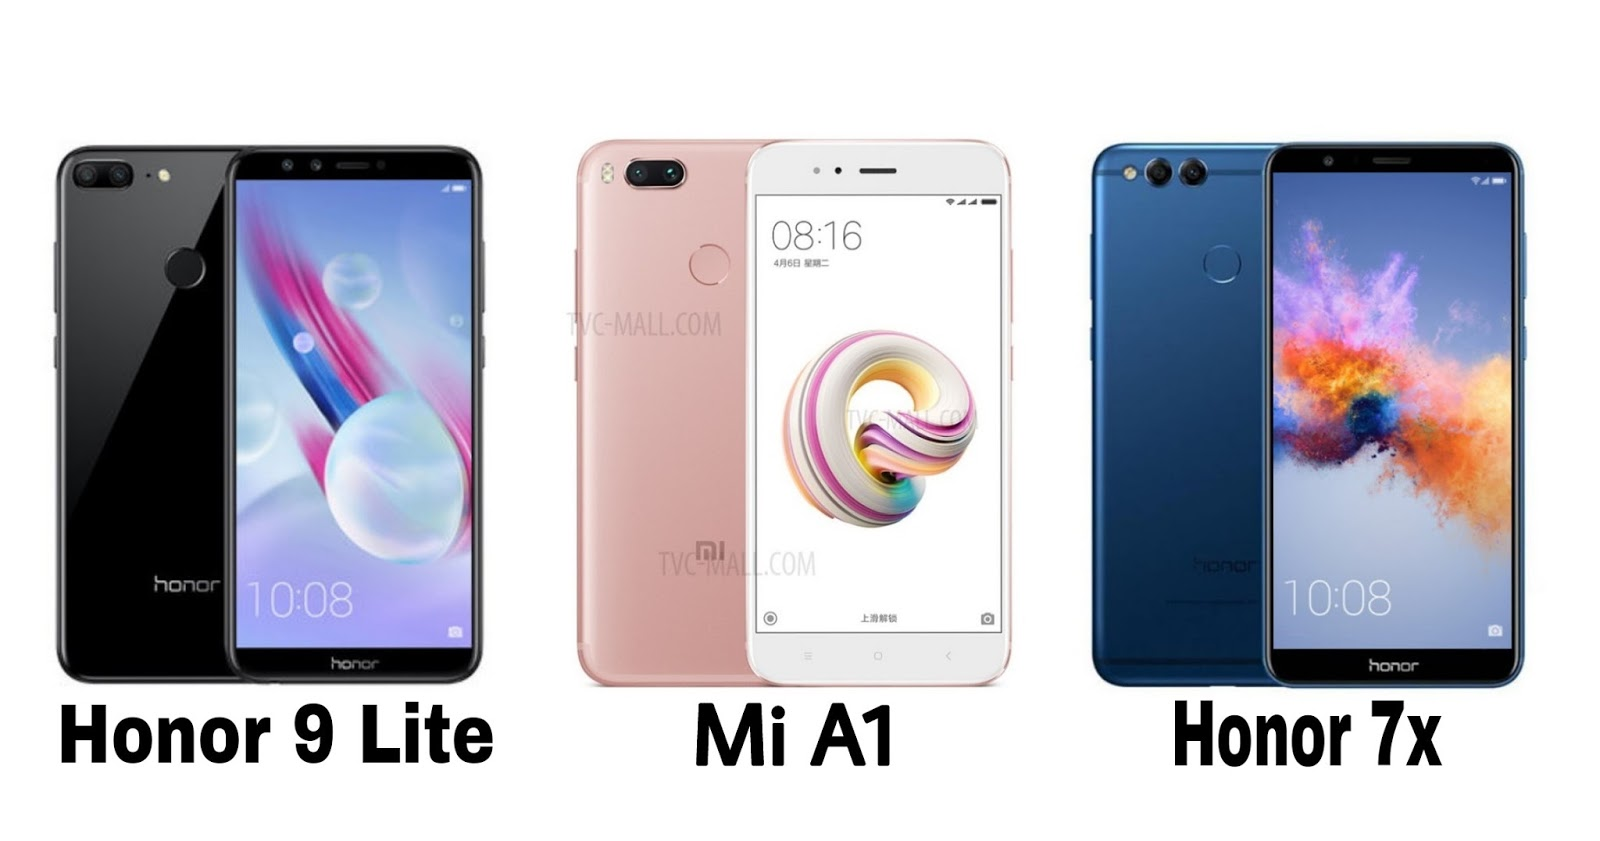 honor 9 lite vs honor 7x, honor 9 lite vs mi a1